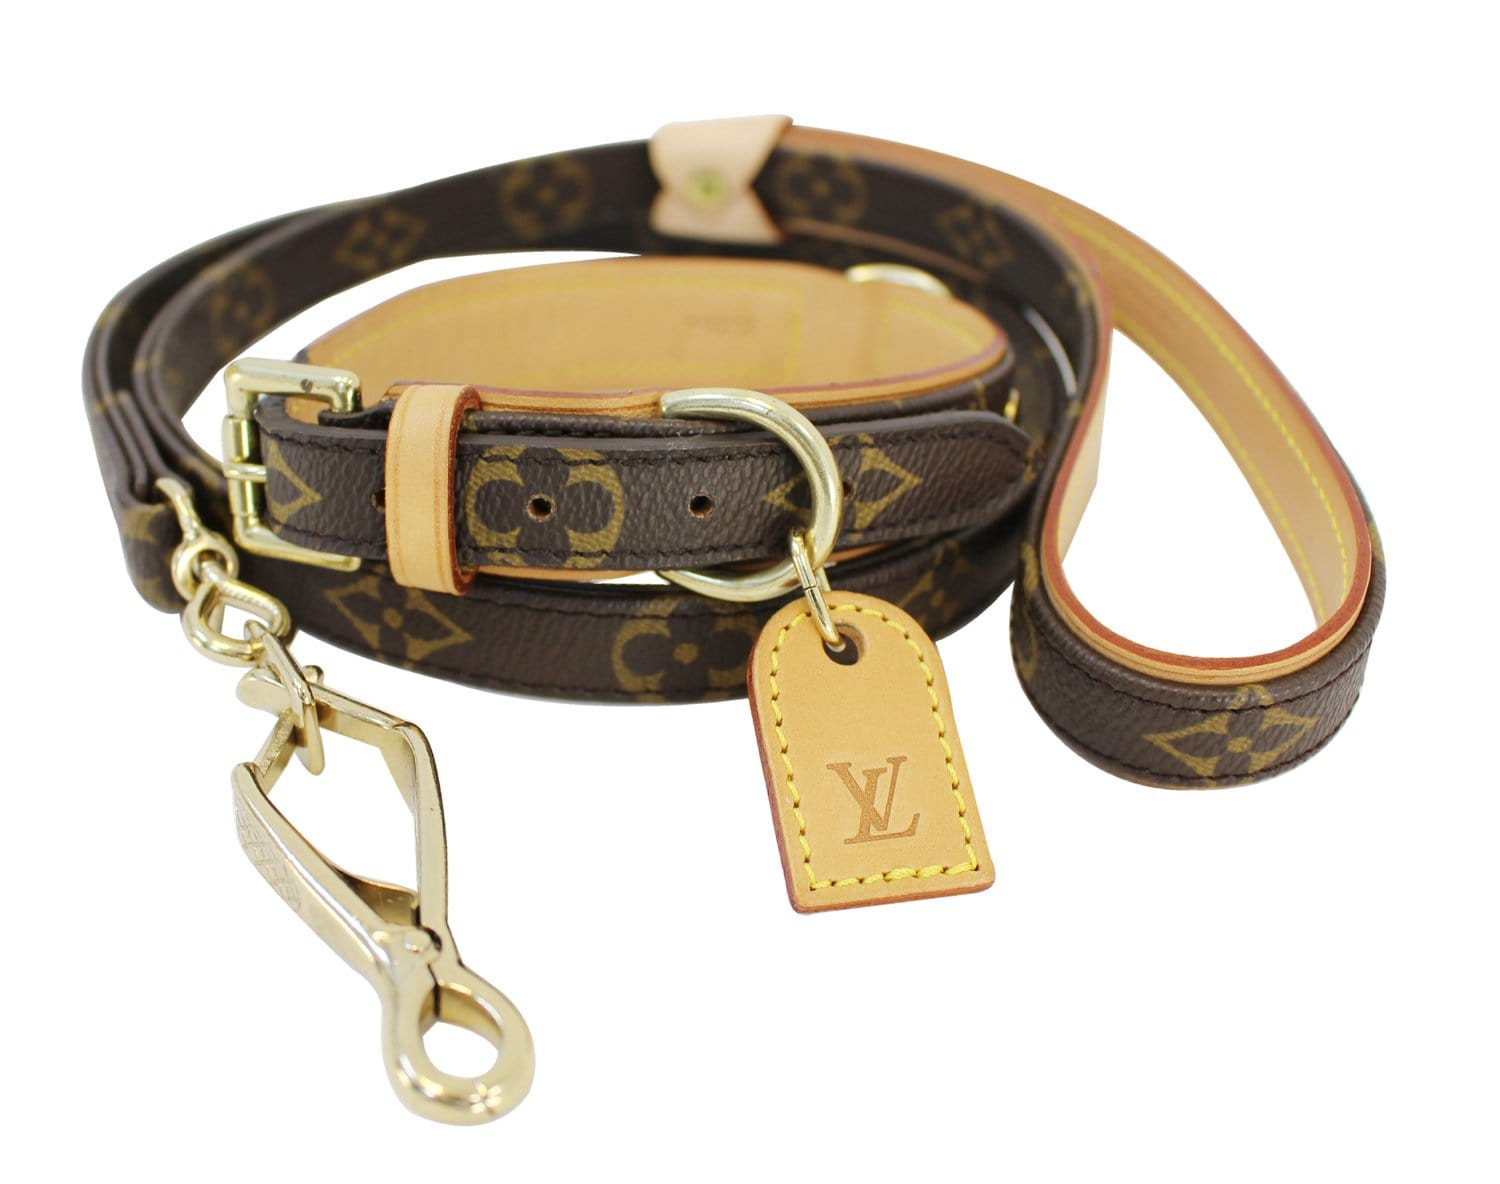 c79055ee Authentic LOUIS VUITTON Monogram Dog Leash Baxter MM Collier Set E3264